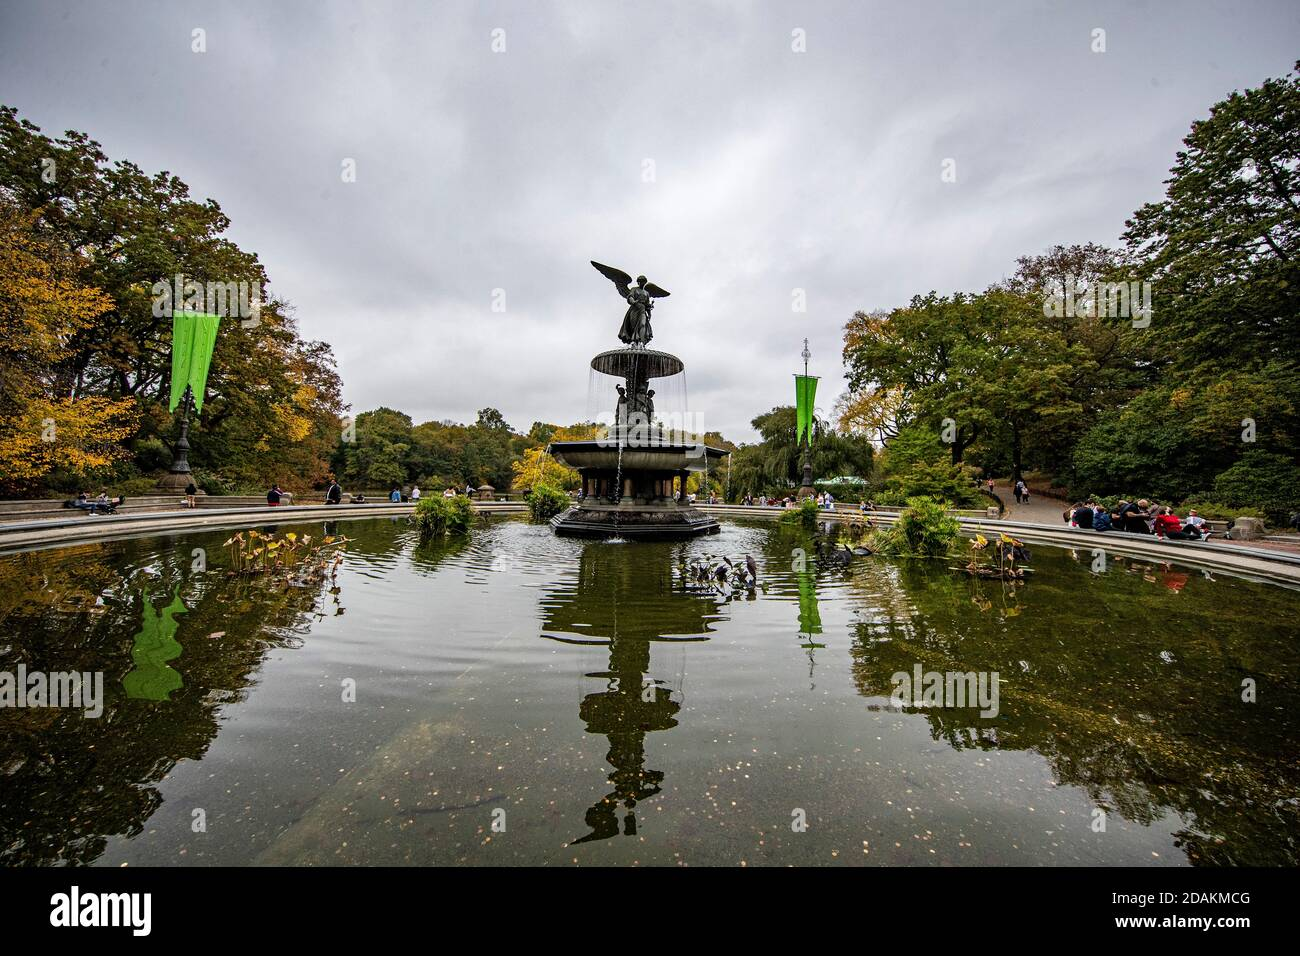 The Bethesda fountain in Central Park, New York City Stock Photo